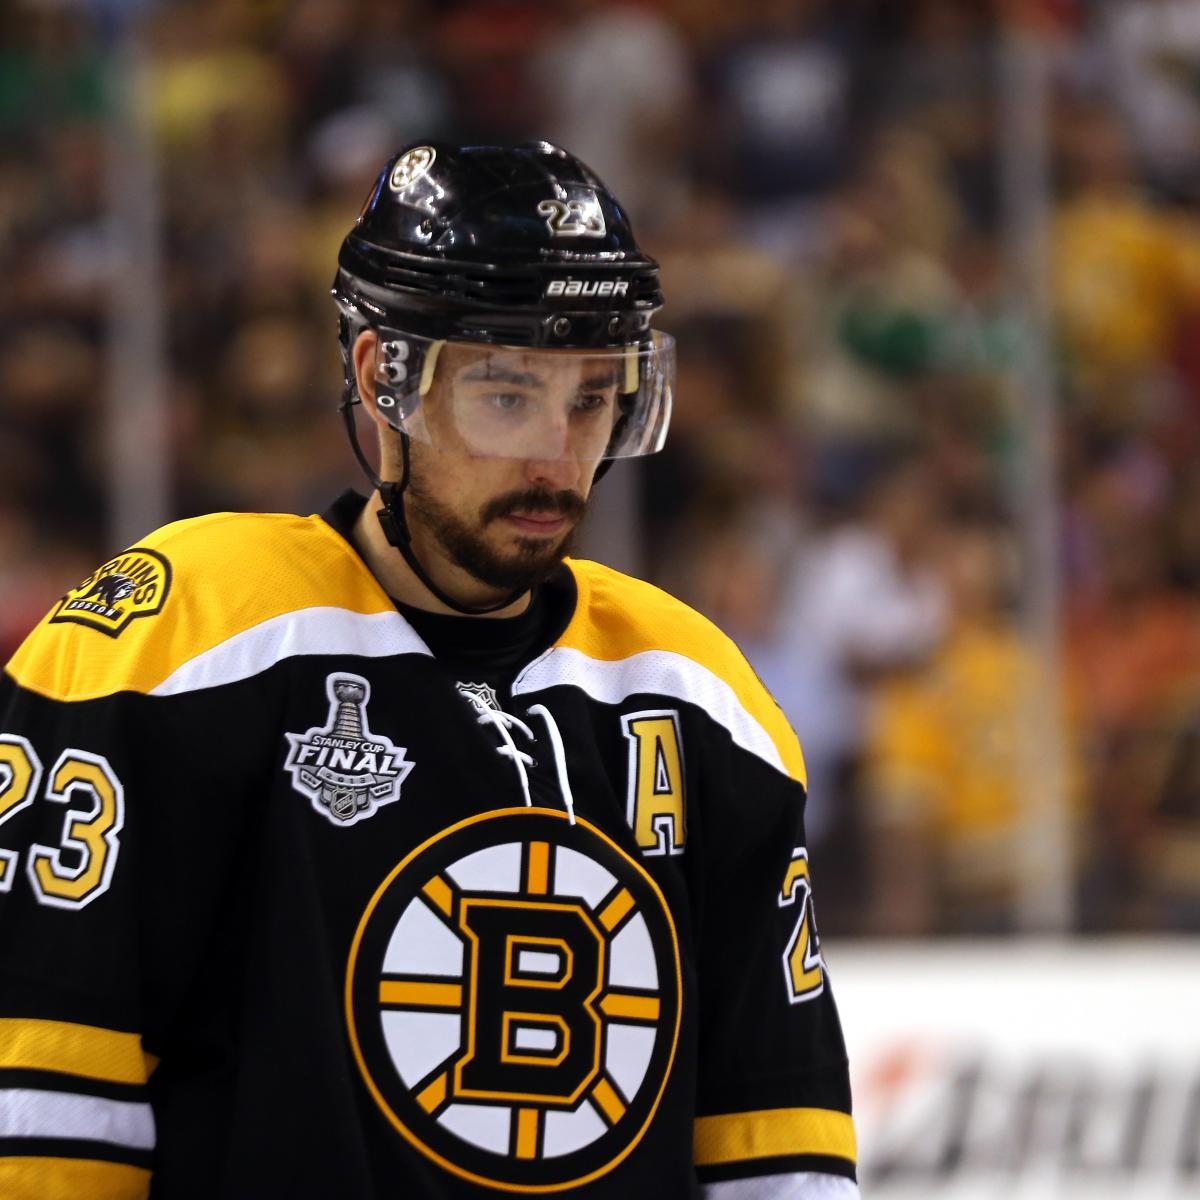 Boston Bruins Players Most Likely To Be Traded In 2013-14